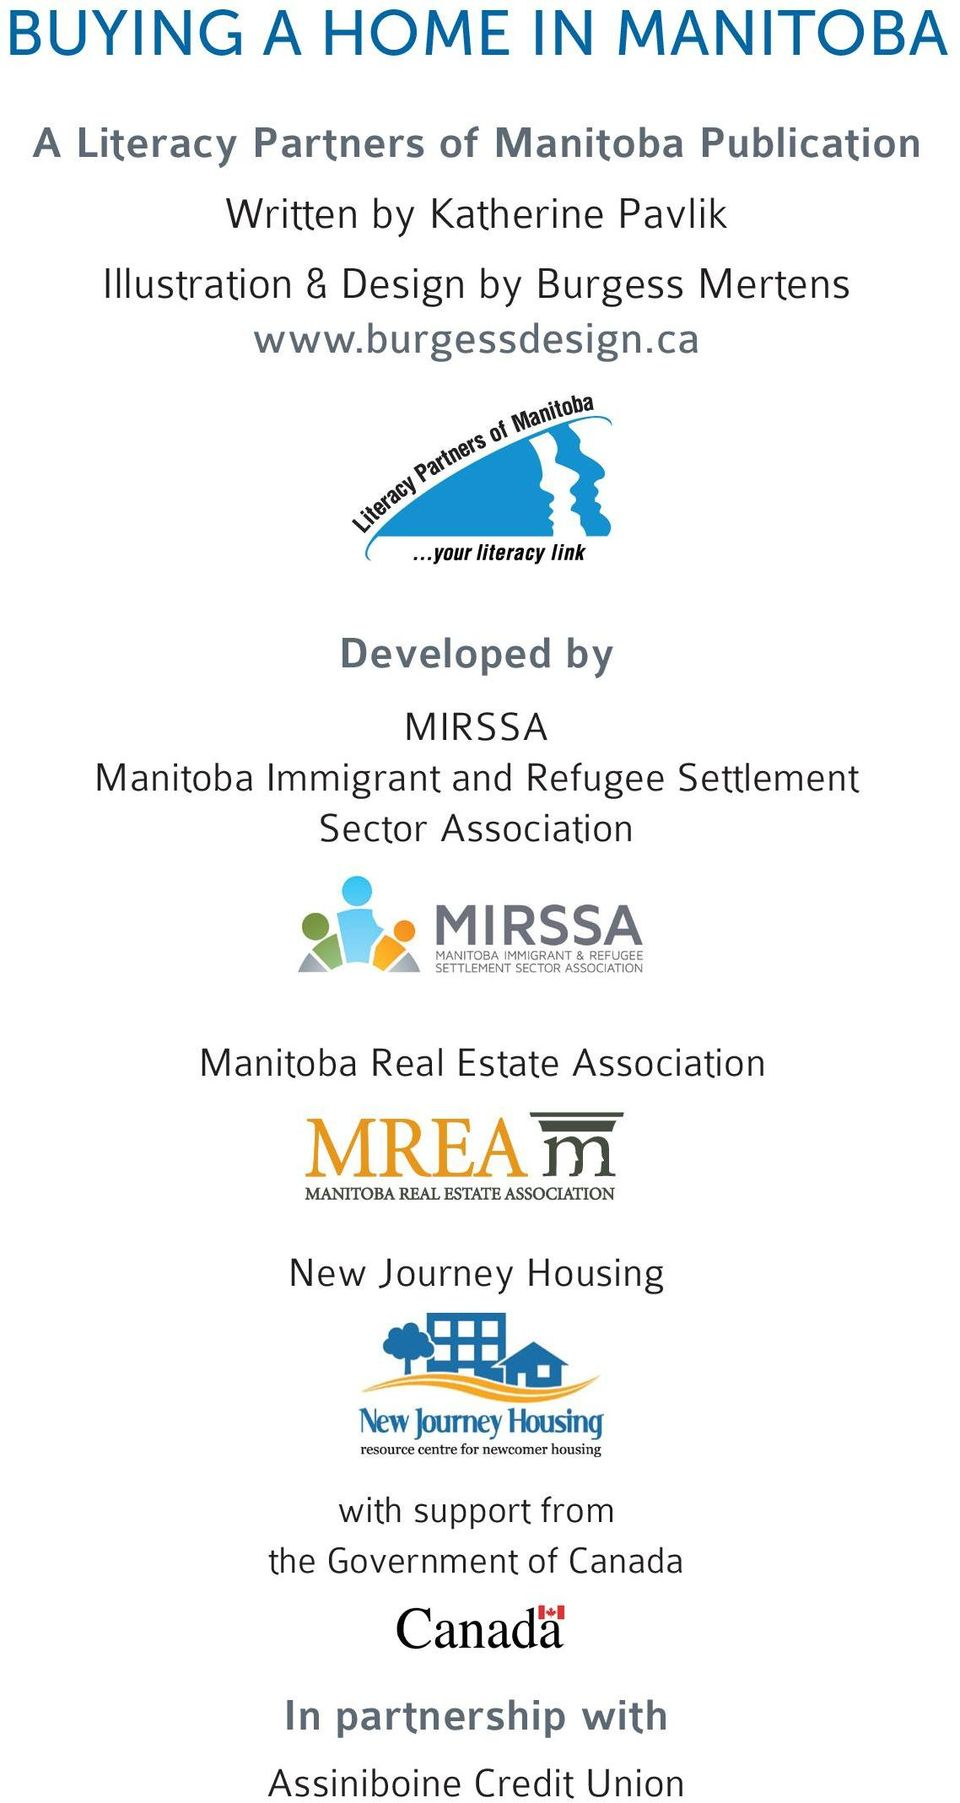 ca Developed by MIRSSA Manitoba Immigrant and Refugee Settlement Sector Association Manitoba